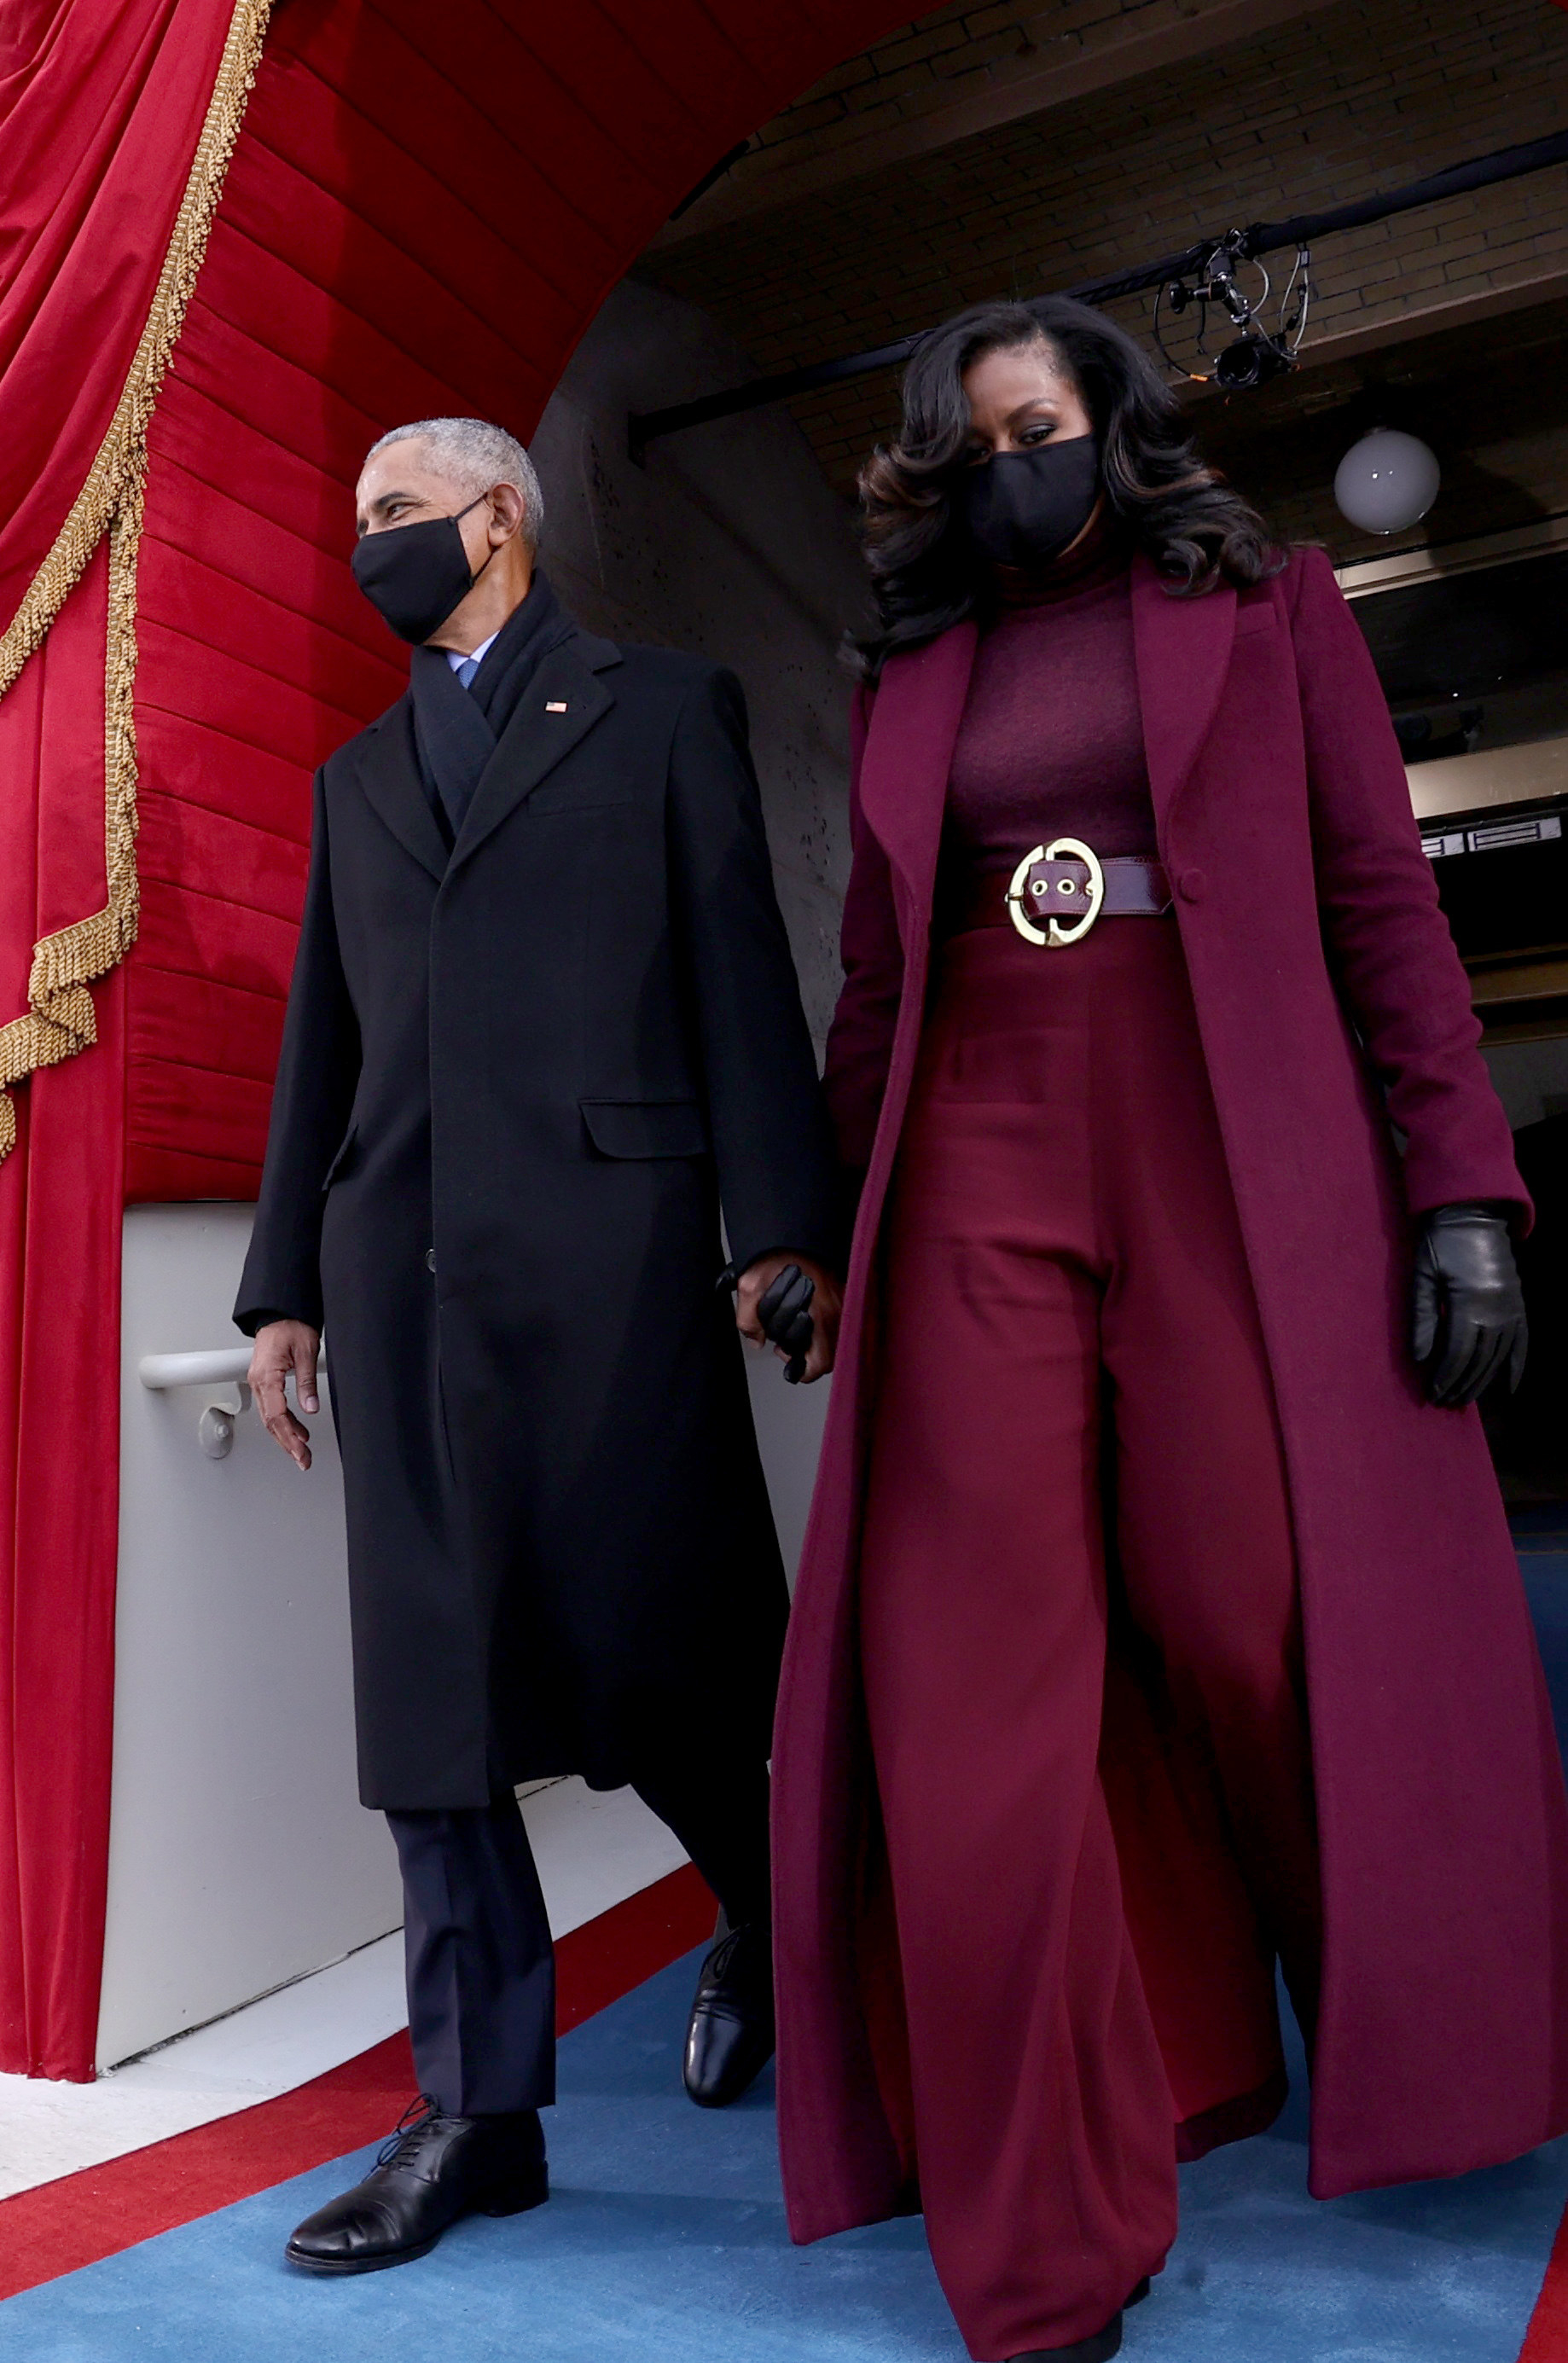 Barack and Michelle Obama hold hands at President Joe Biden's inauguration